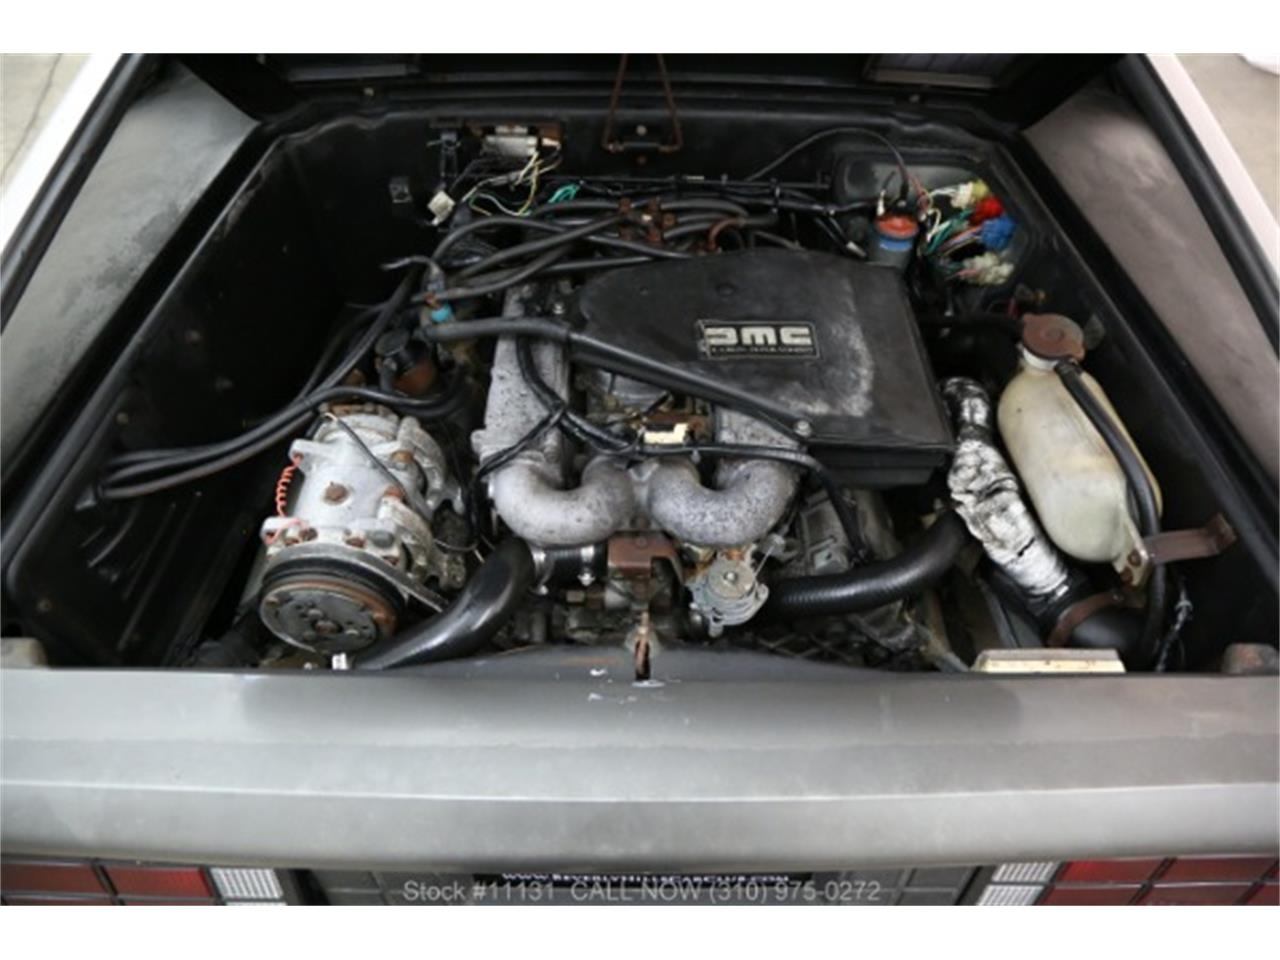 Large Picture of 1981 DeLorean DMC-12 located in Beverly Hills California - $19,500.00 Offered by Beverly Hills Car Club - QNPP